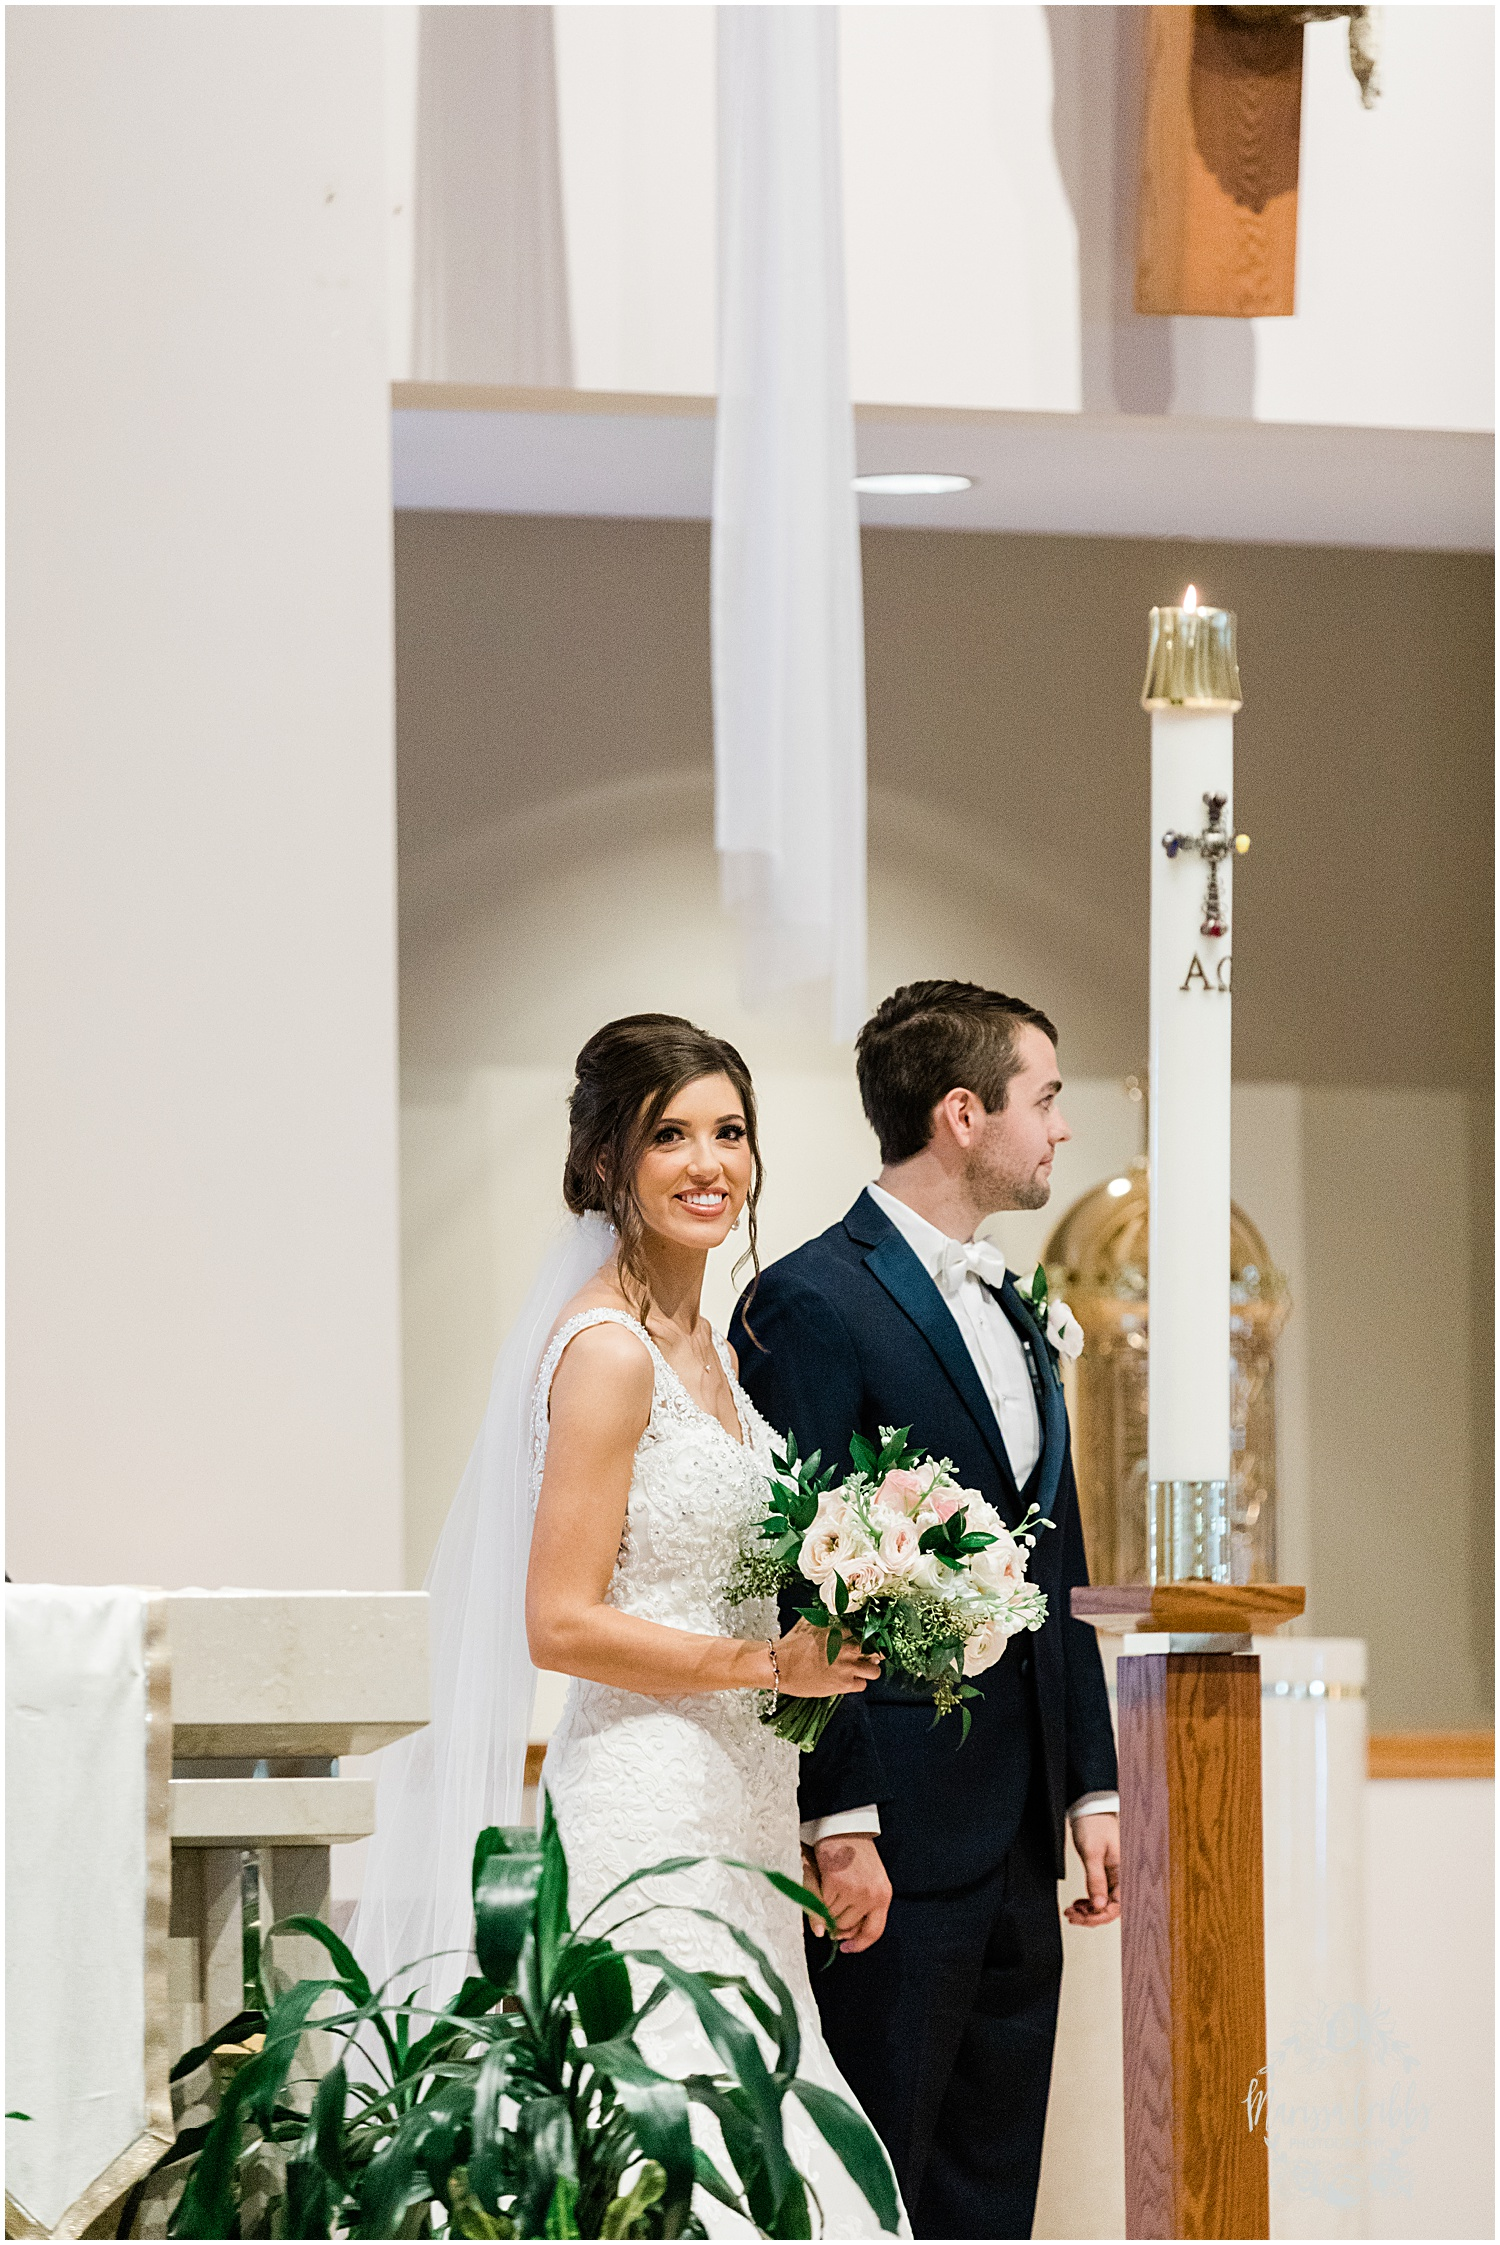 MEGAN & DEREK WEDDING BLOG | MARISSA CRIBBS PHOTOGRAPHY_8132.jpg